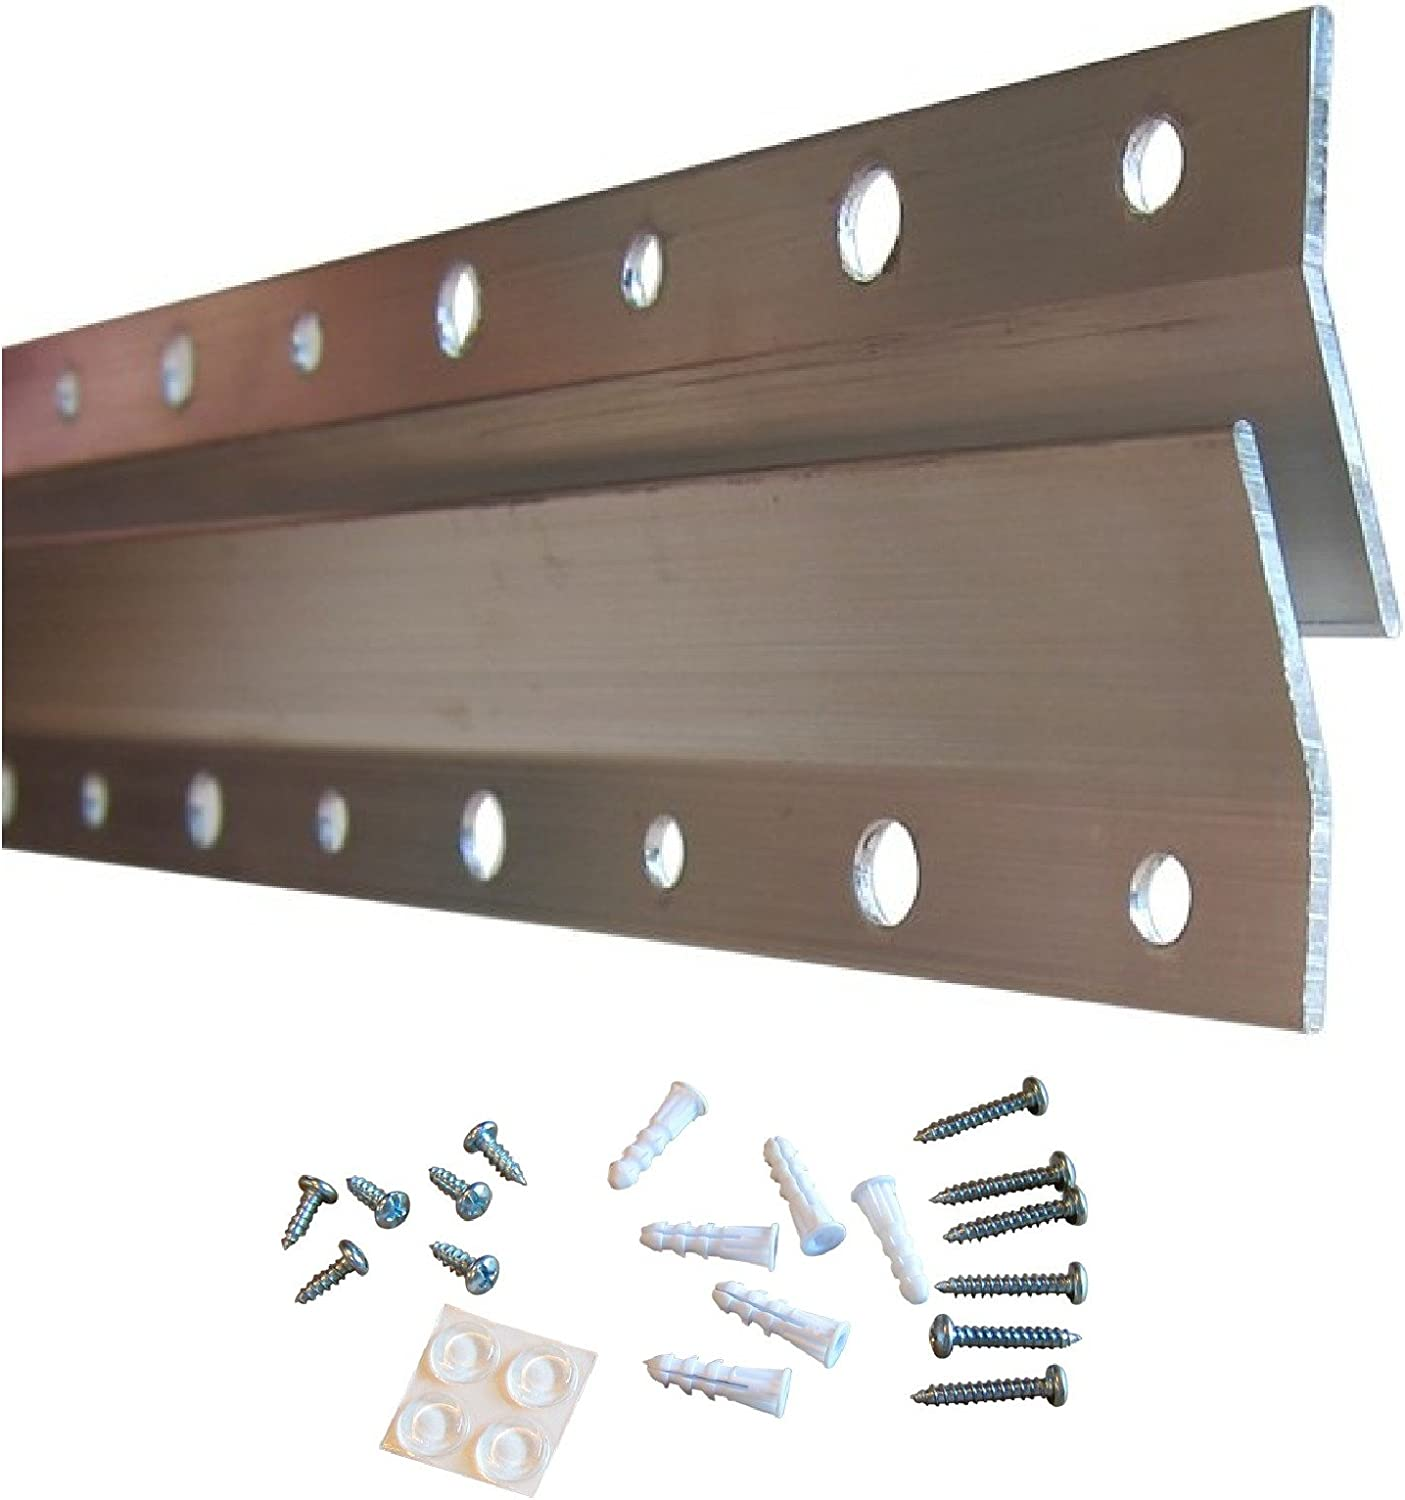 French Cleat Hanger 10 Inch - 2 Pack - Picture, Mirror, Whiteboard, Pallet or Panel Wall Mount Bracket - Z Bar Hanger Supports 50 lbs